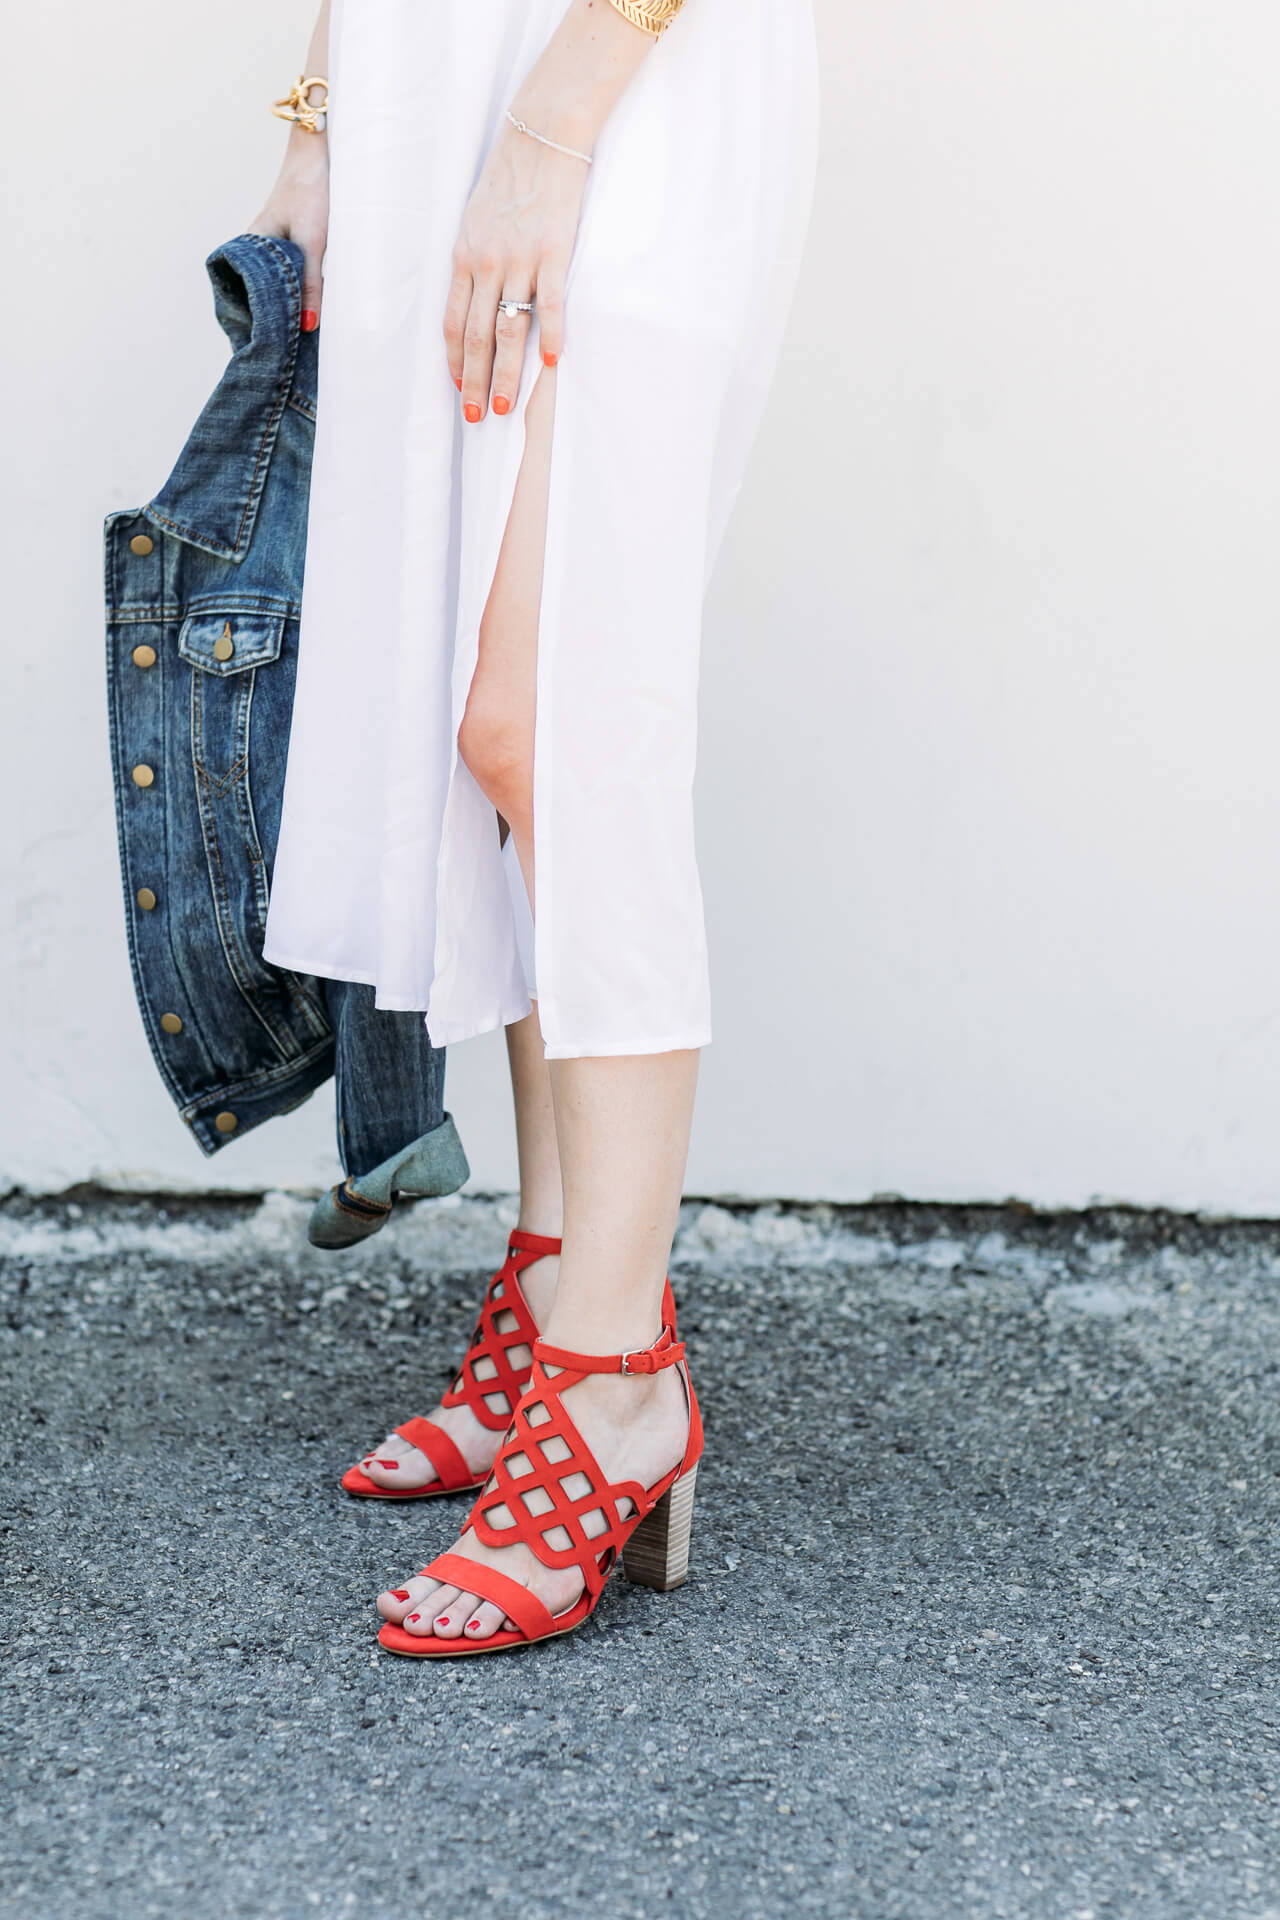 Styling red heels with a white dress and cute denim jackt